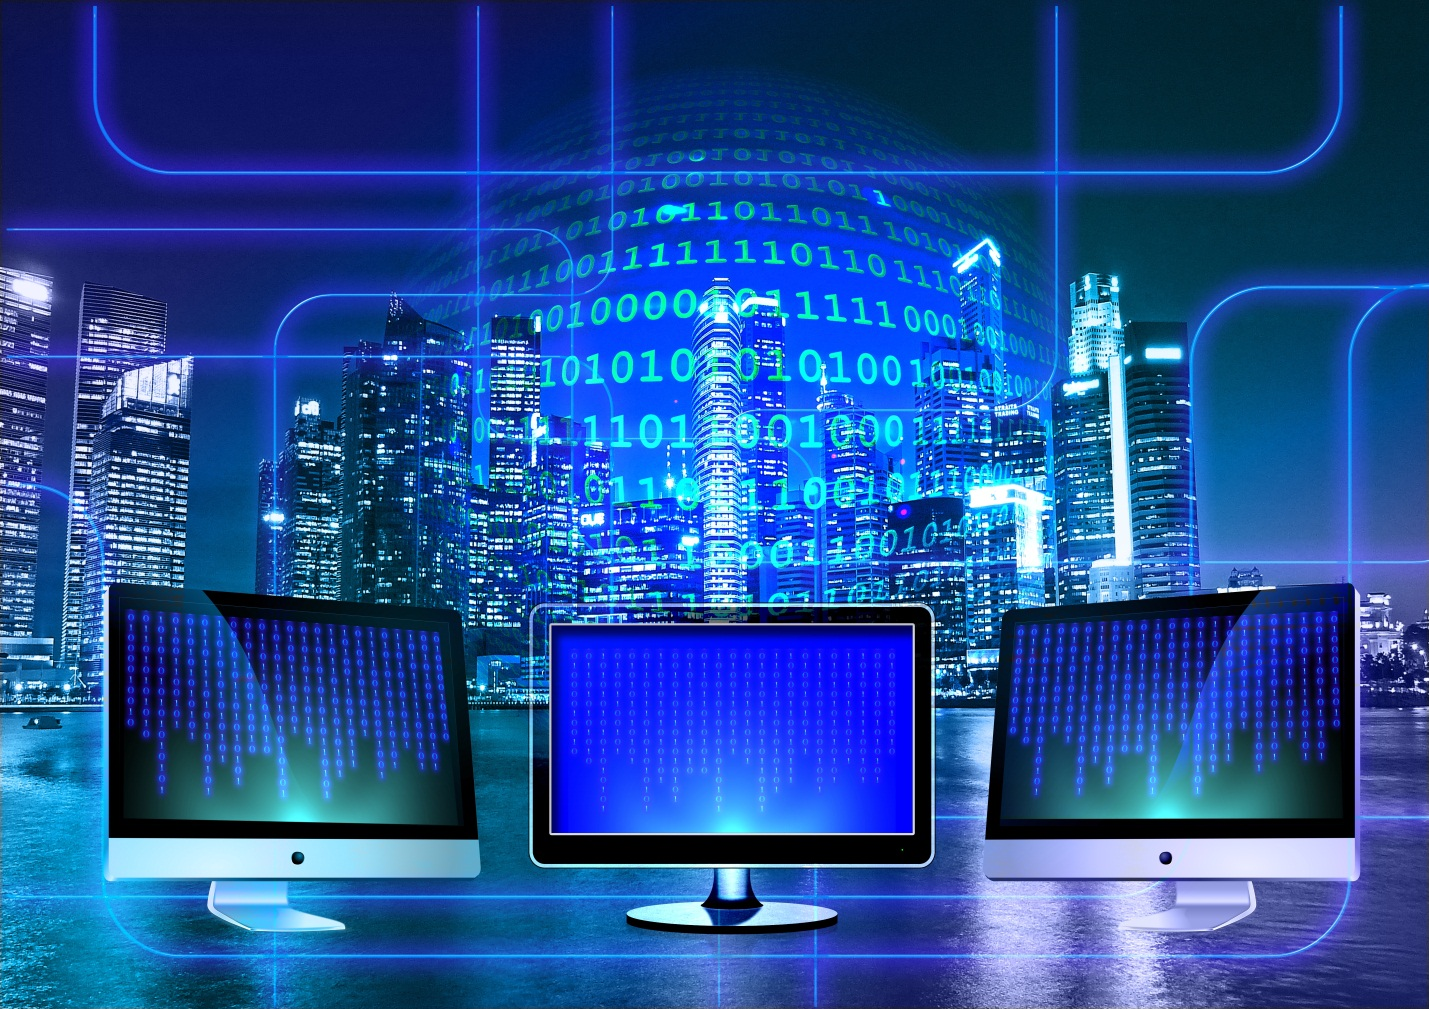 Make Your Lives Easier With these Windows Networking TroubleShooting Tips